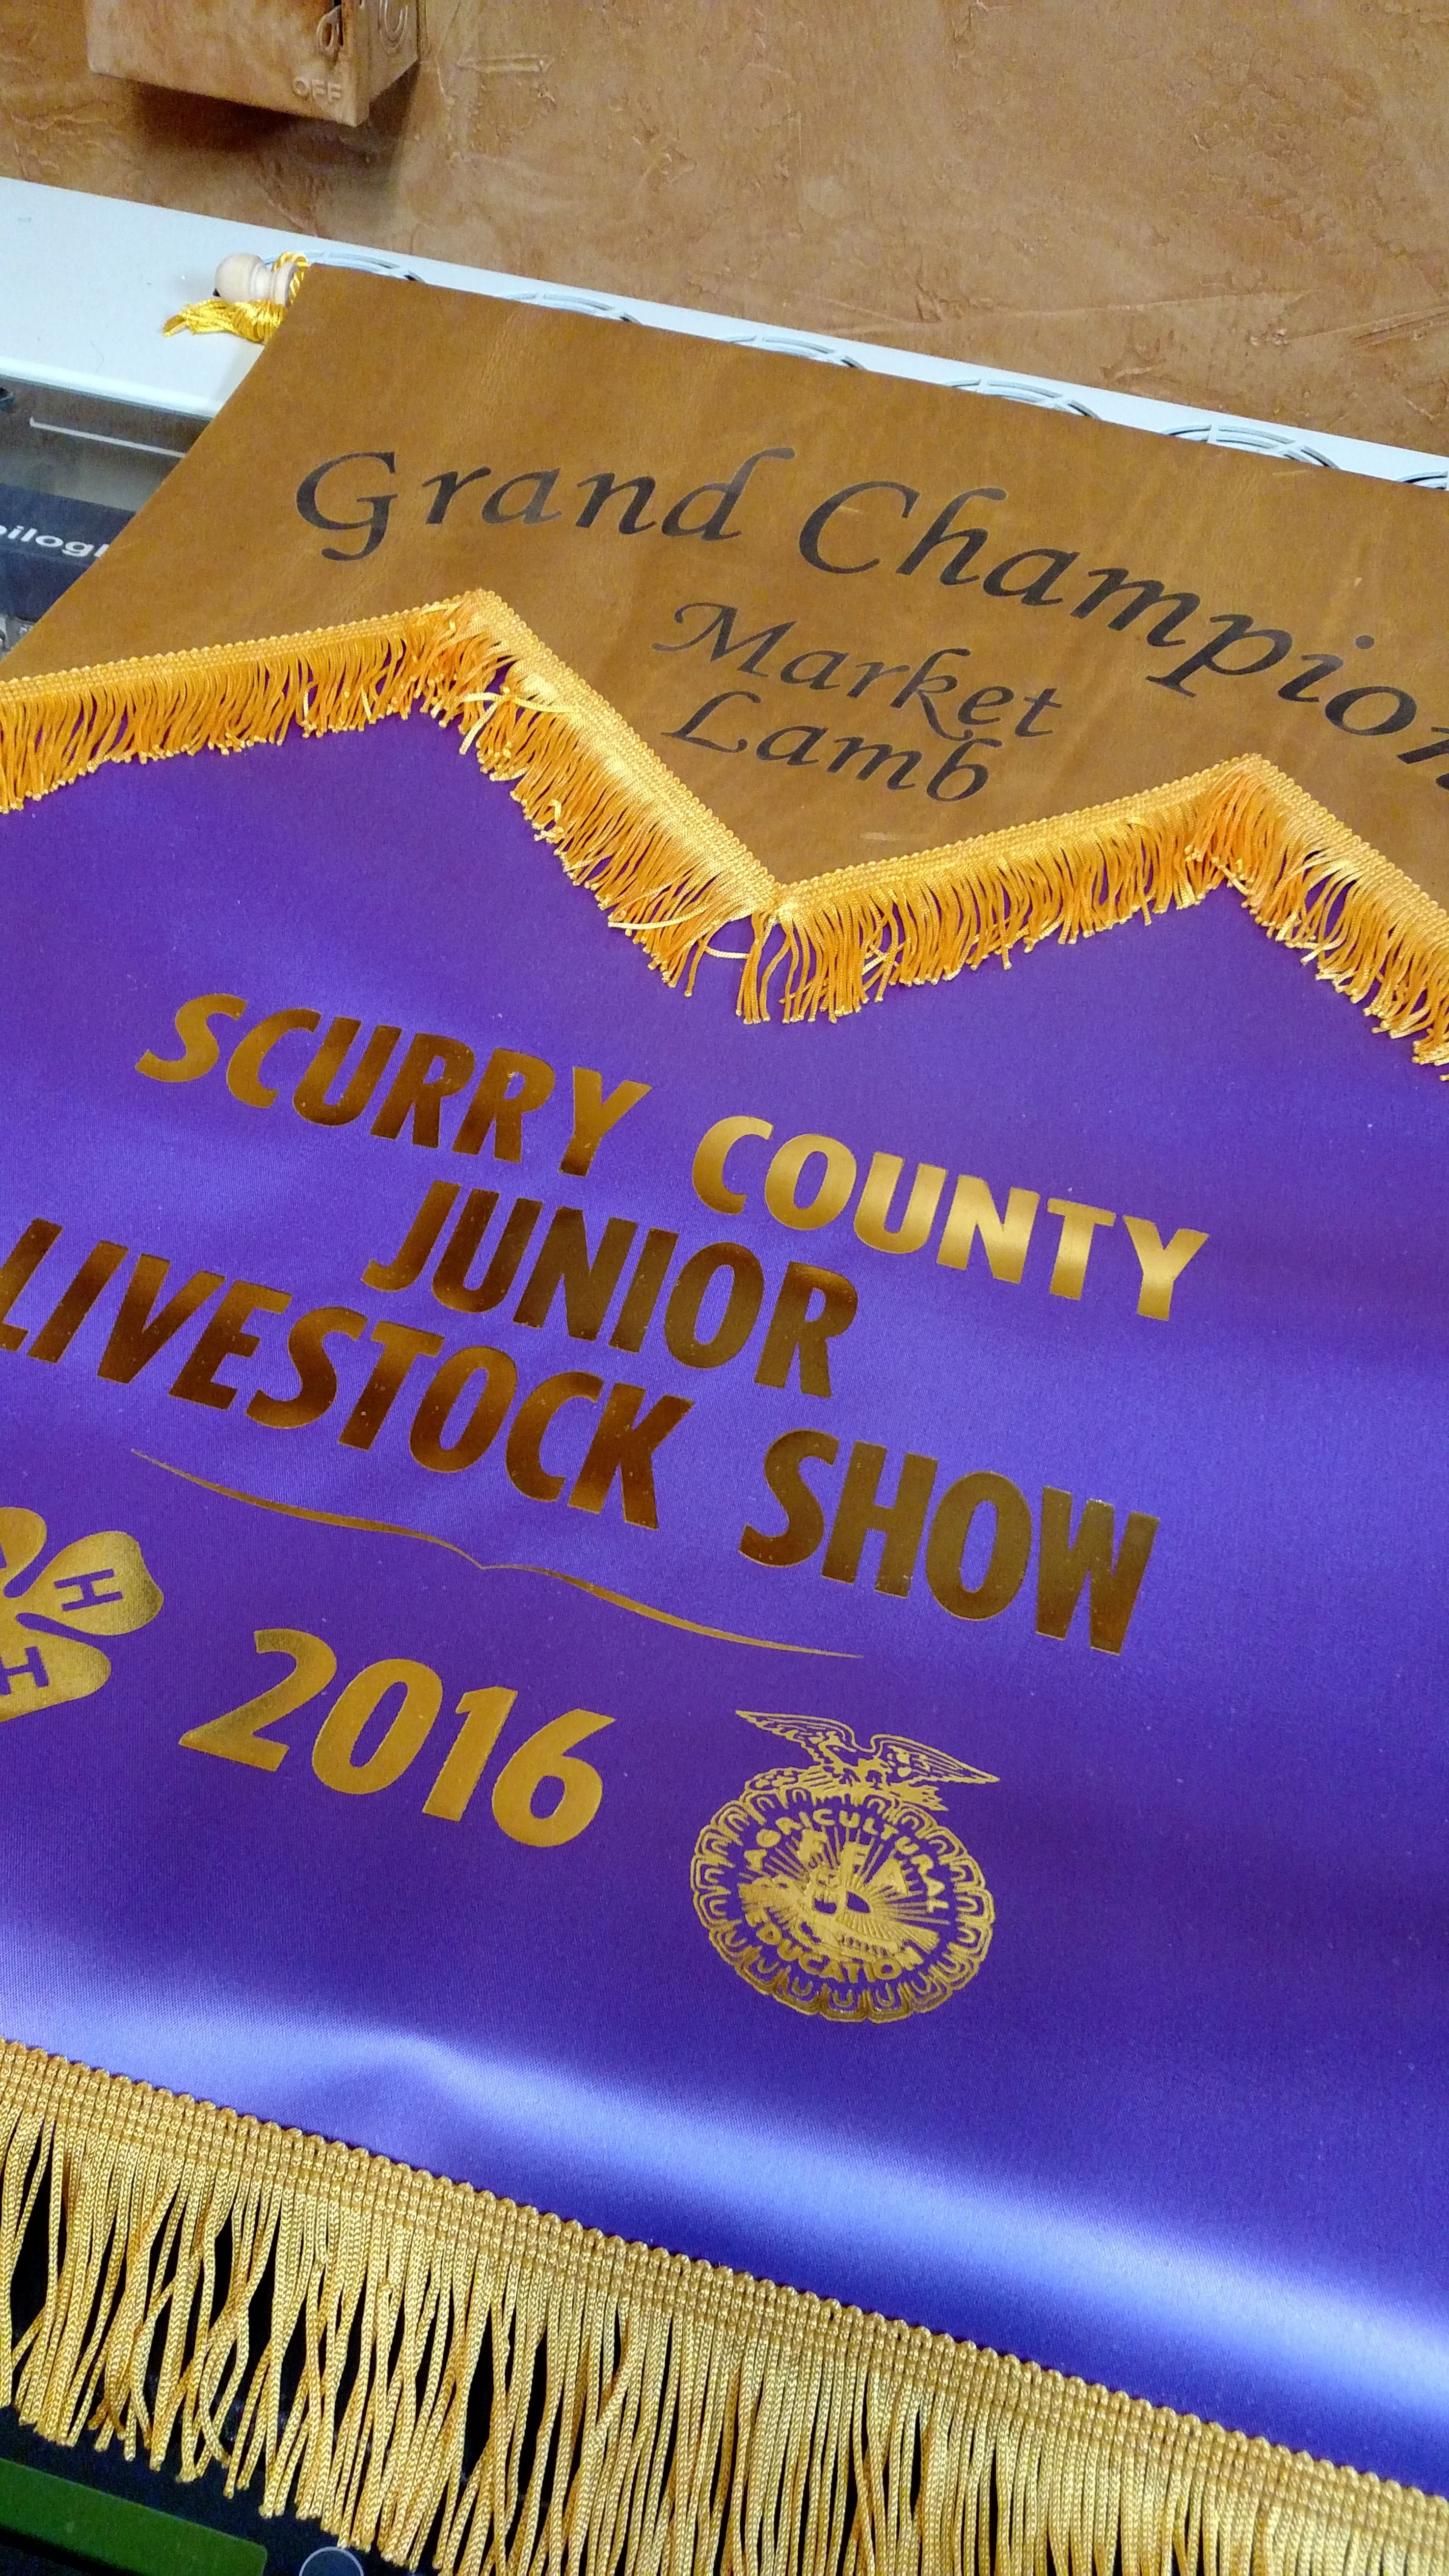 Scurry County Jr Livestock Show Laser Engraved Grand Champion Banners Showing Livestock Livestock Show Cattle